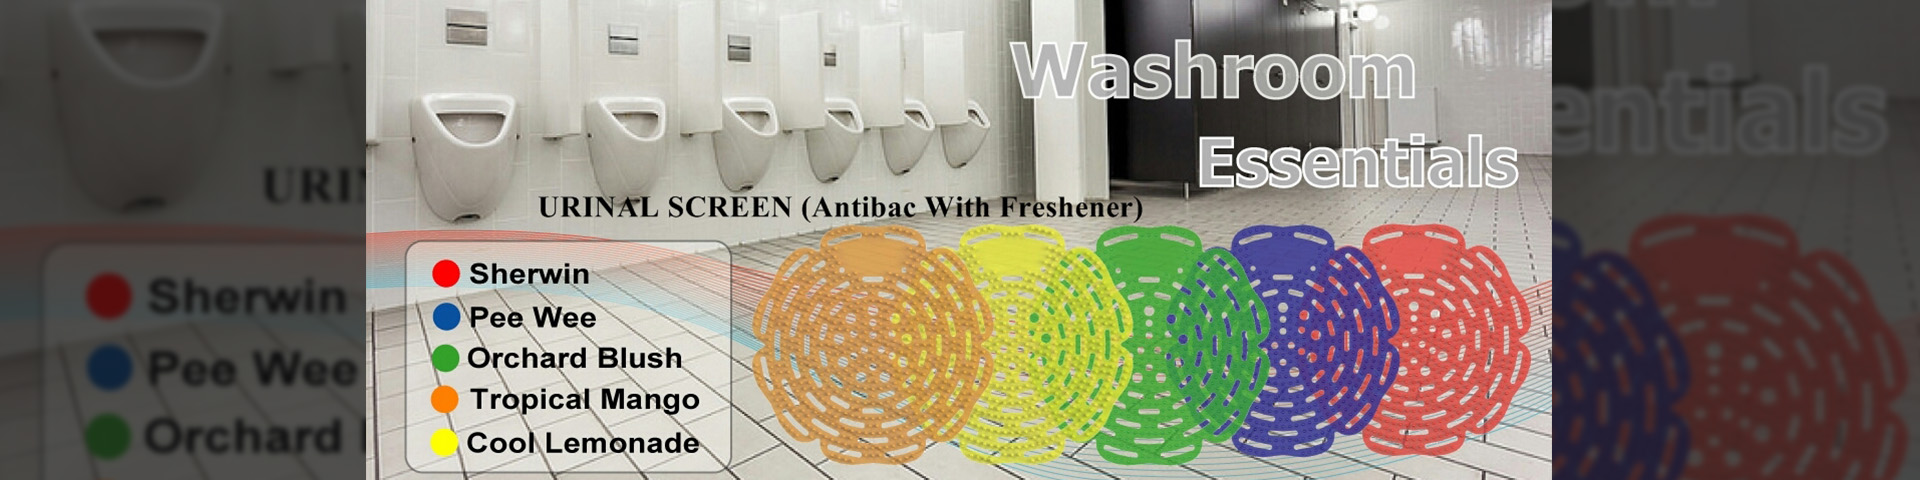 Urinal Screen